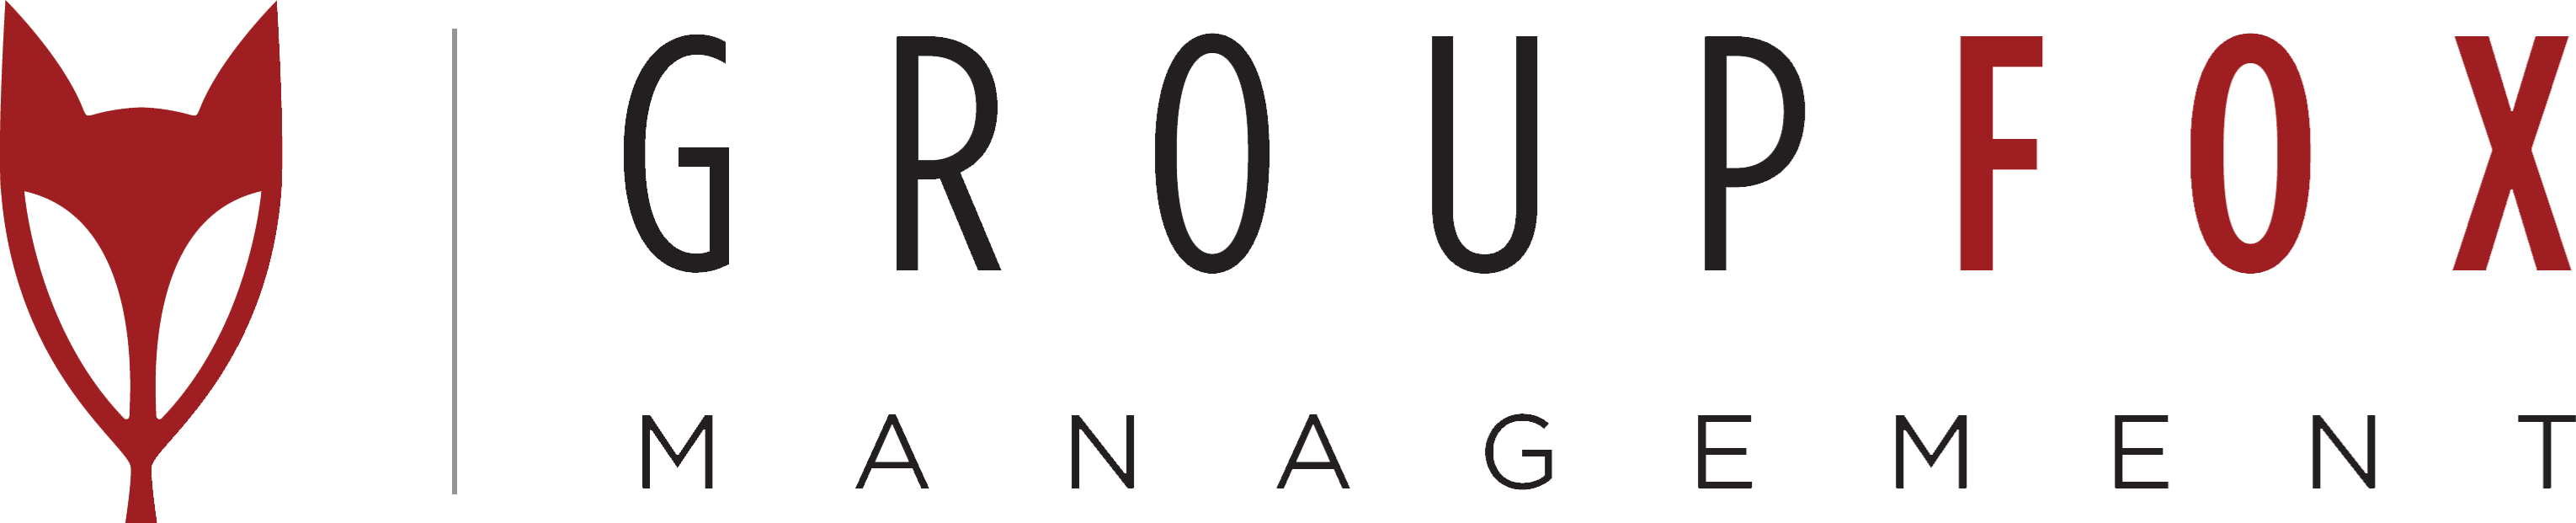 Chicago Property Logo 4